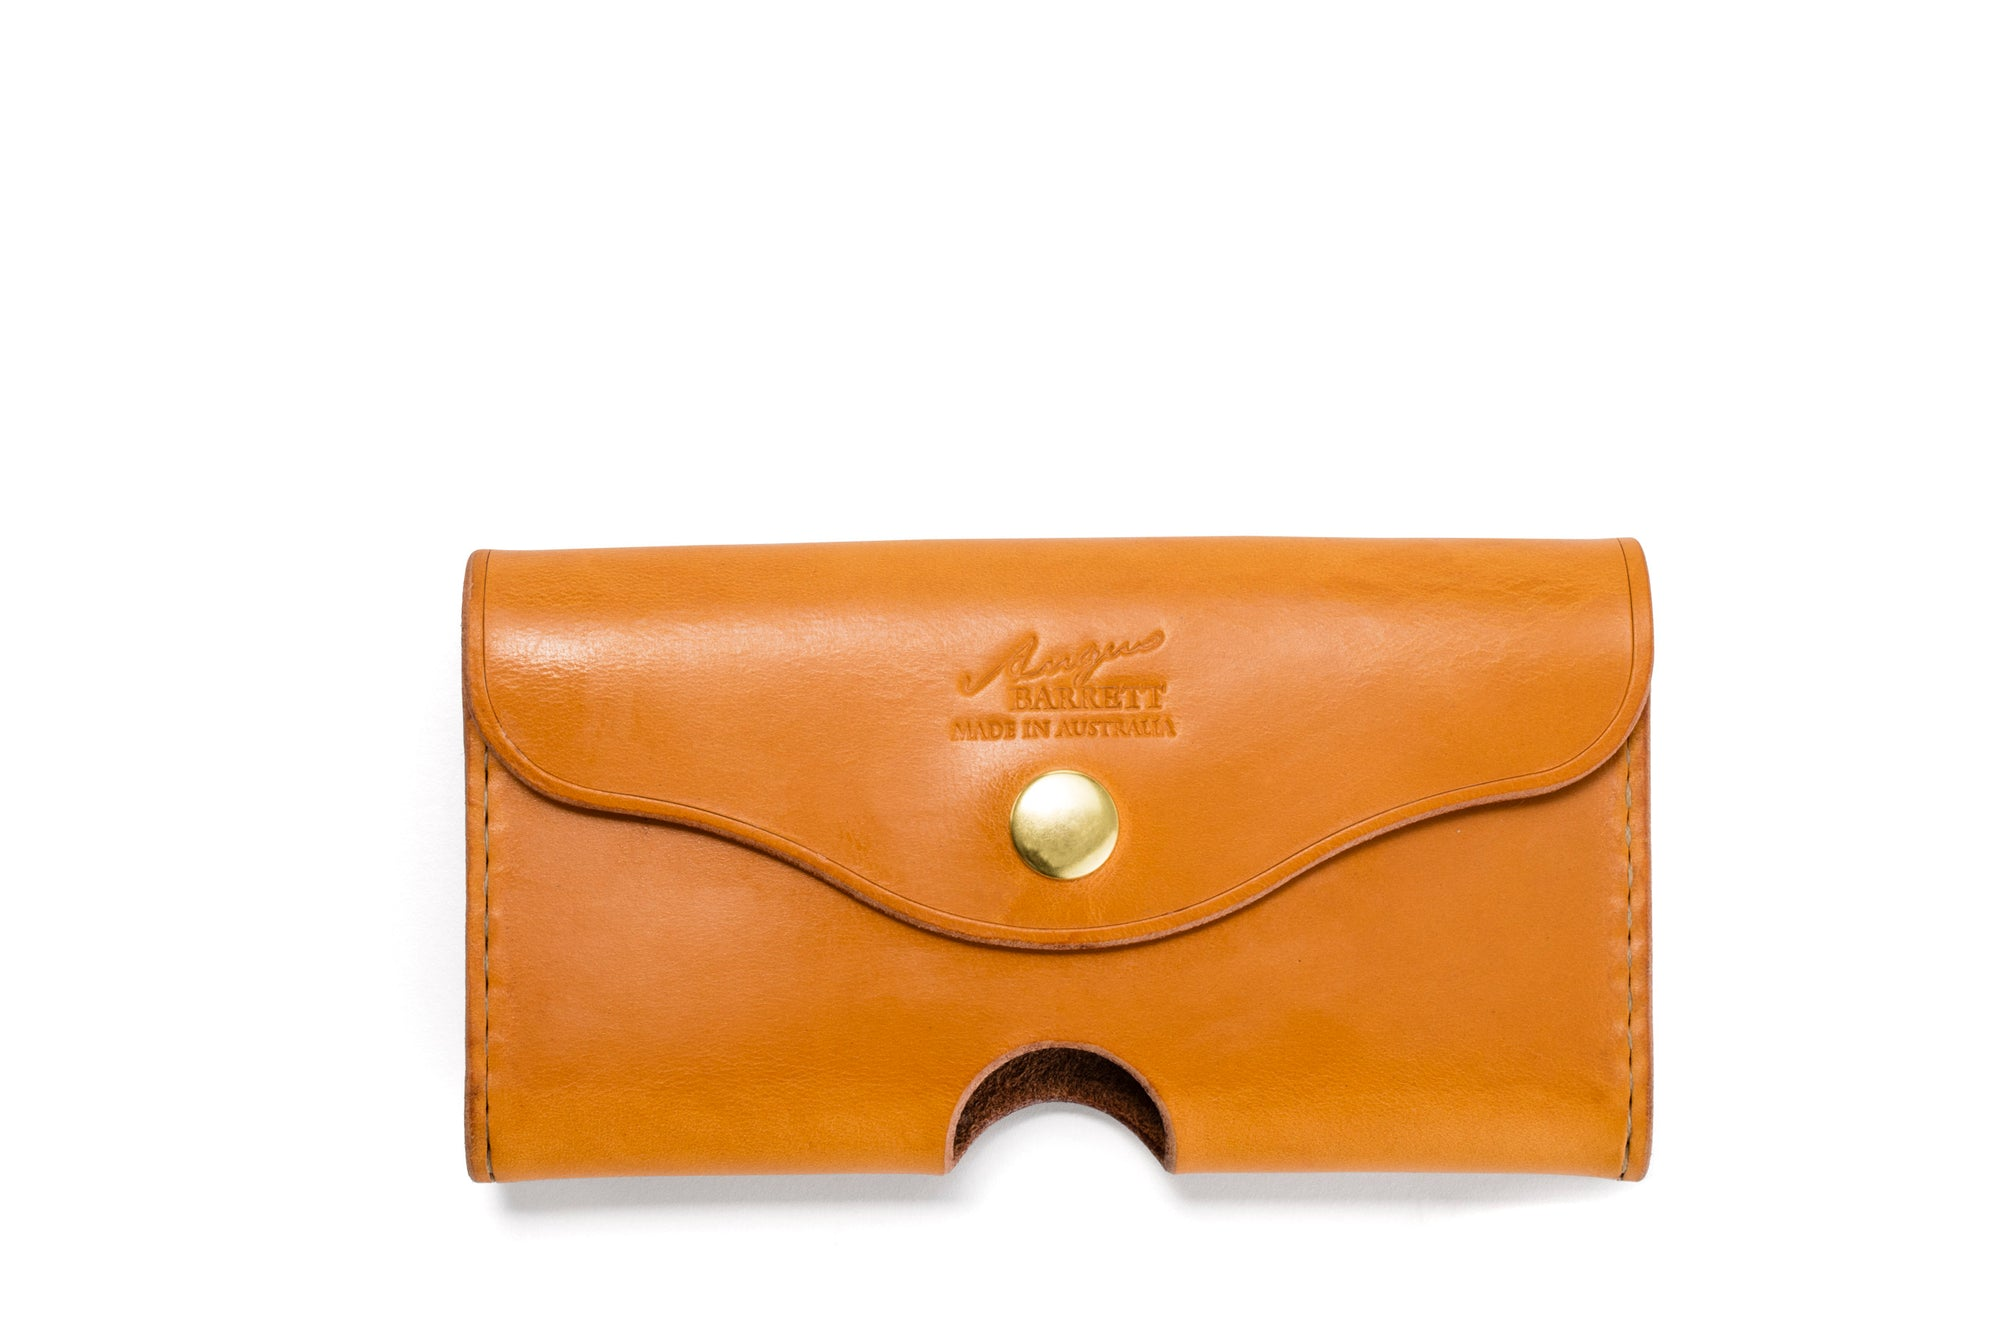 Angus Barrett Phone Pouch in Gold